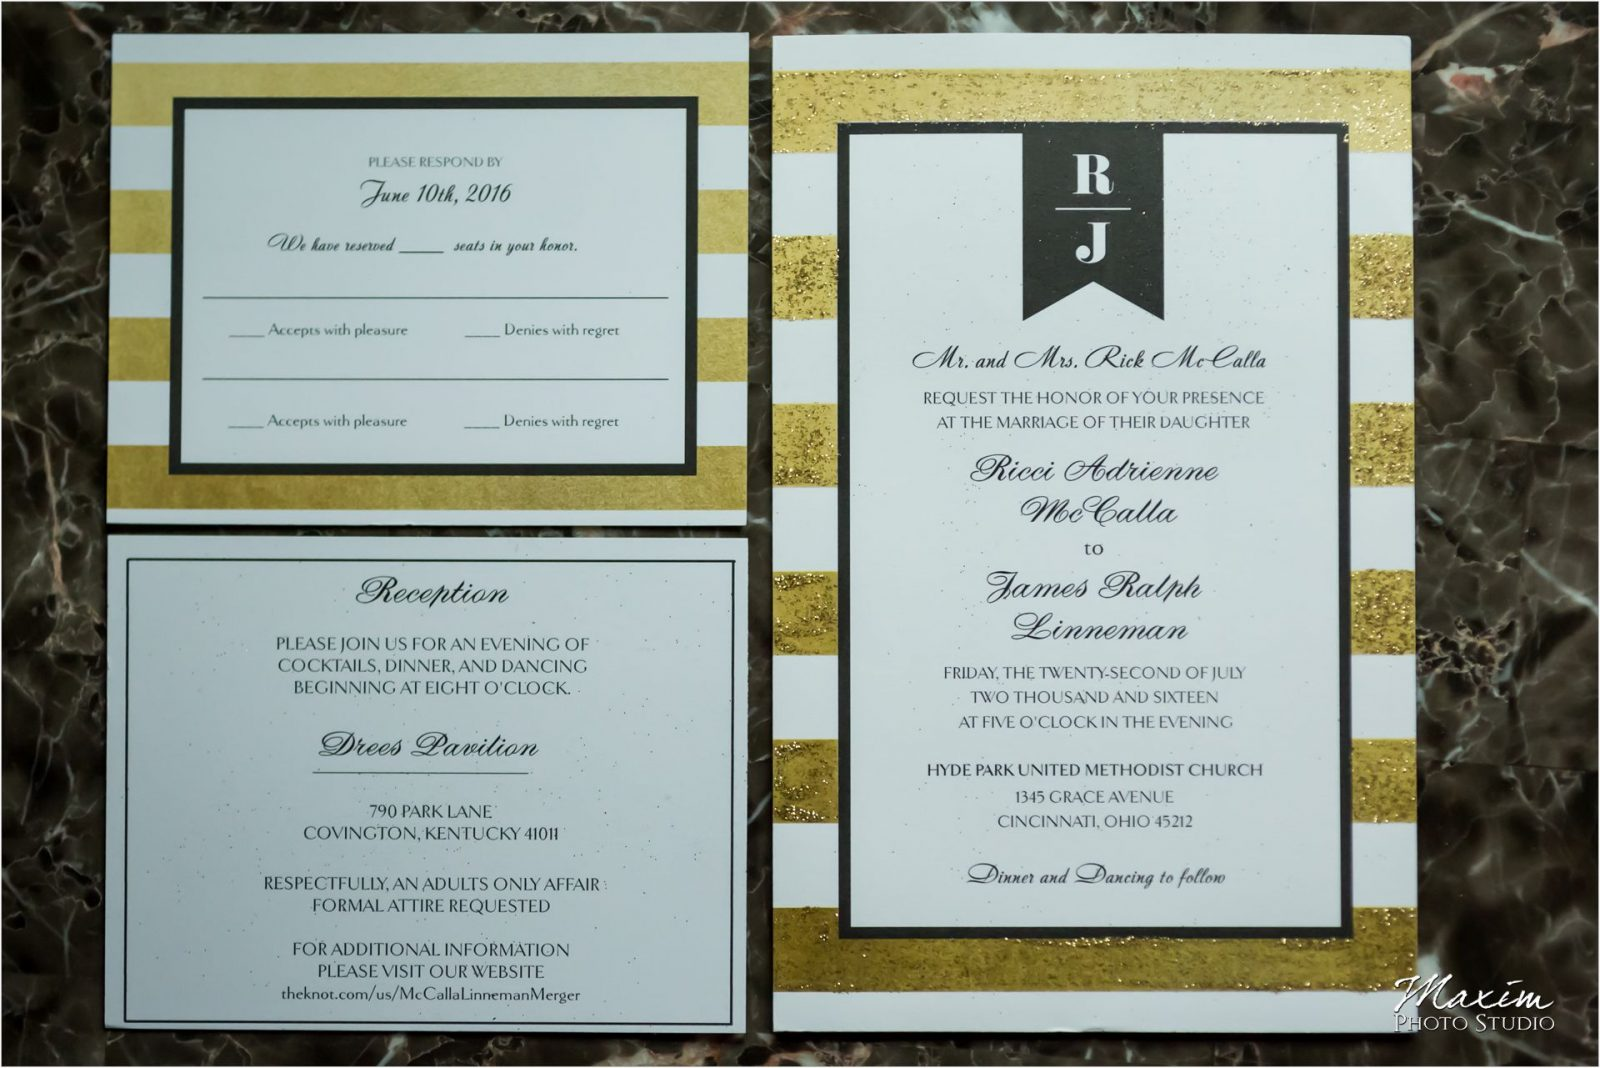 Drees Pavilion Cincinnati Wedding Invitations